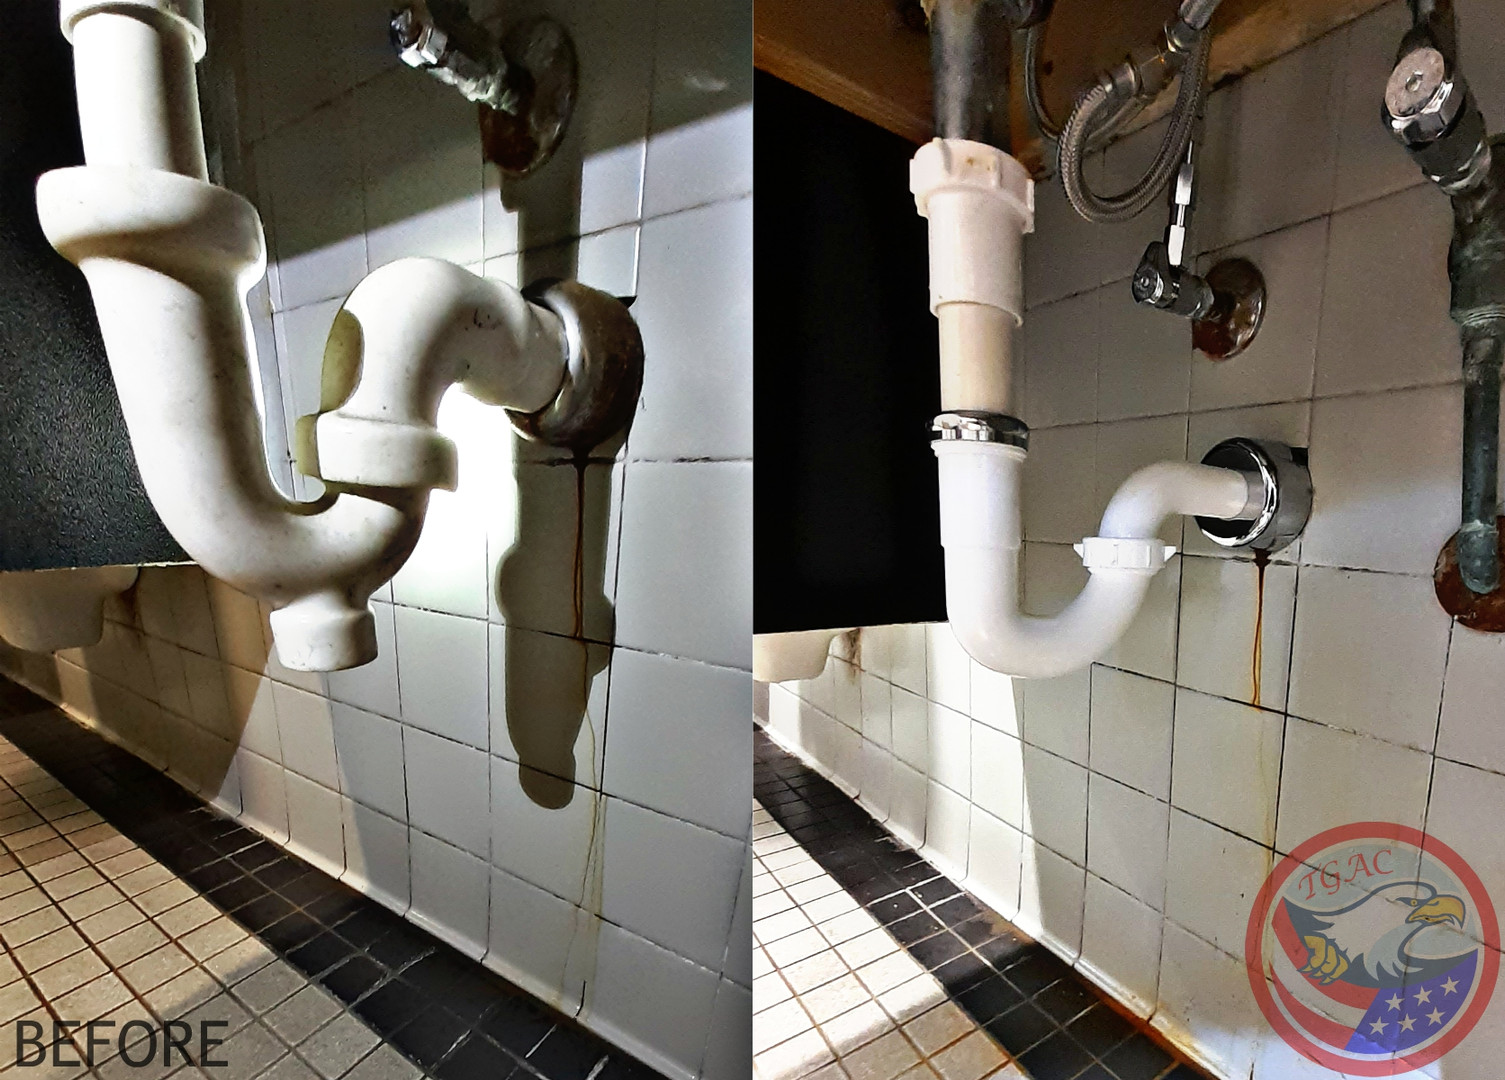 Commercial Sink Pipe Replacement